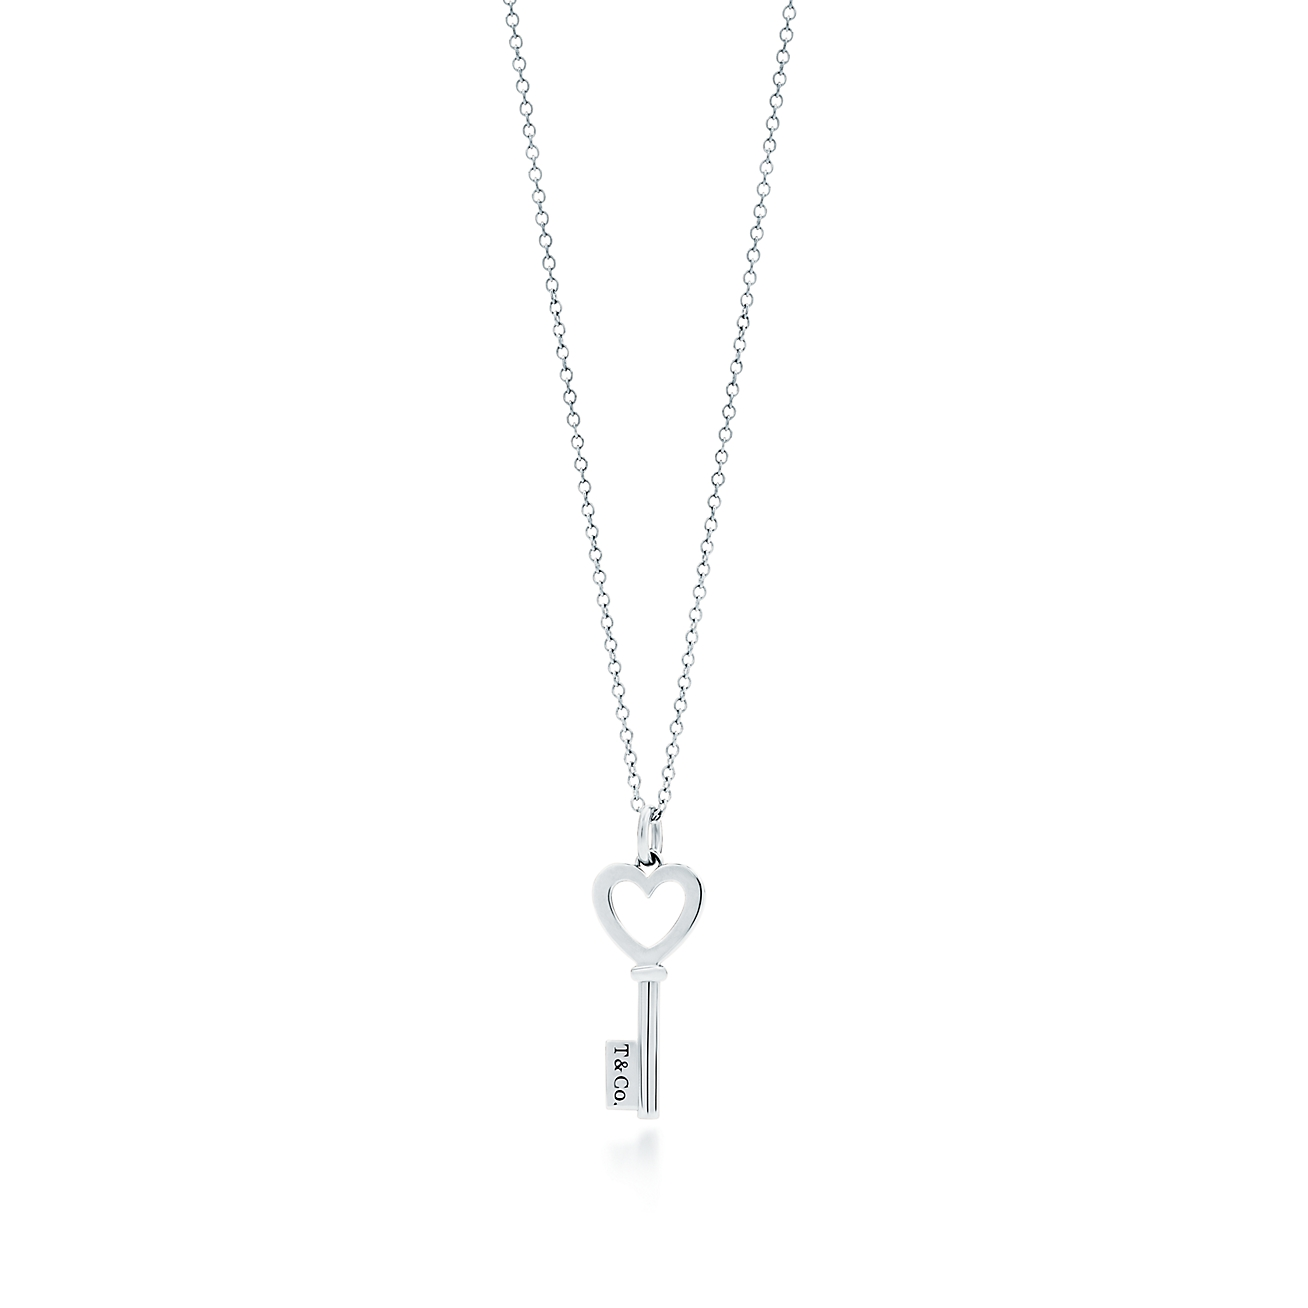 Tiffany keys heart key pendant in sterling silver mini tiffany deletelarge tiffany keysheart key pendant mozeypictures Choice Image